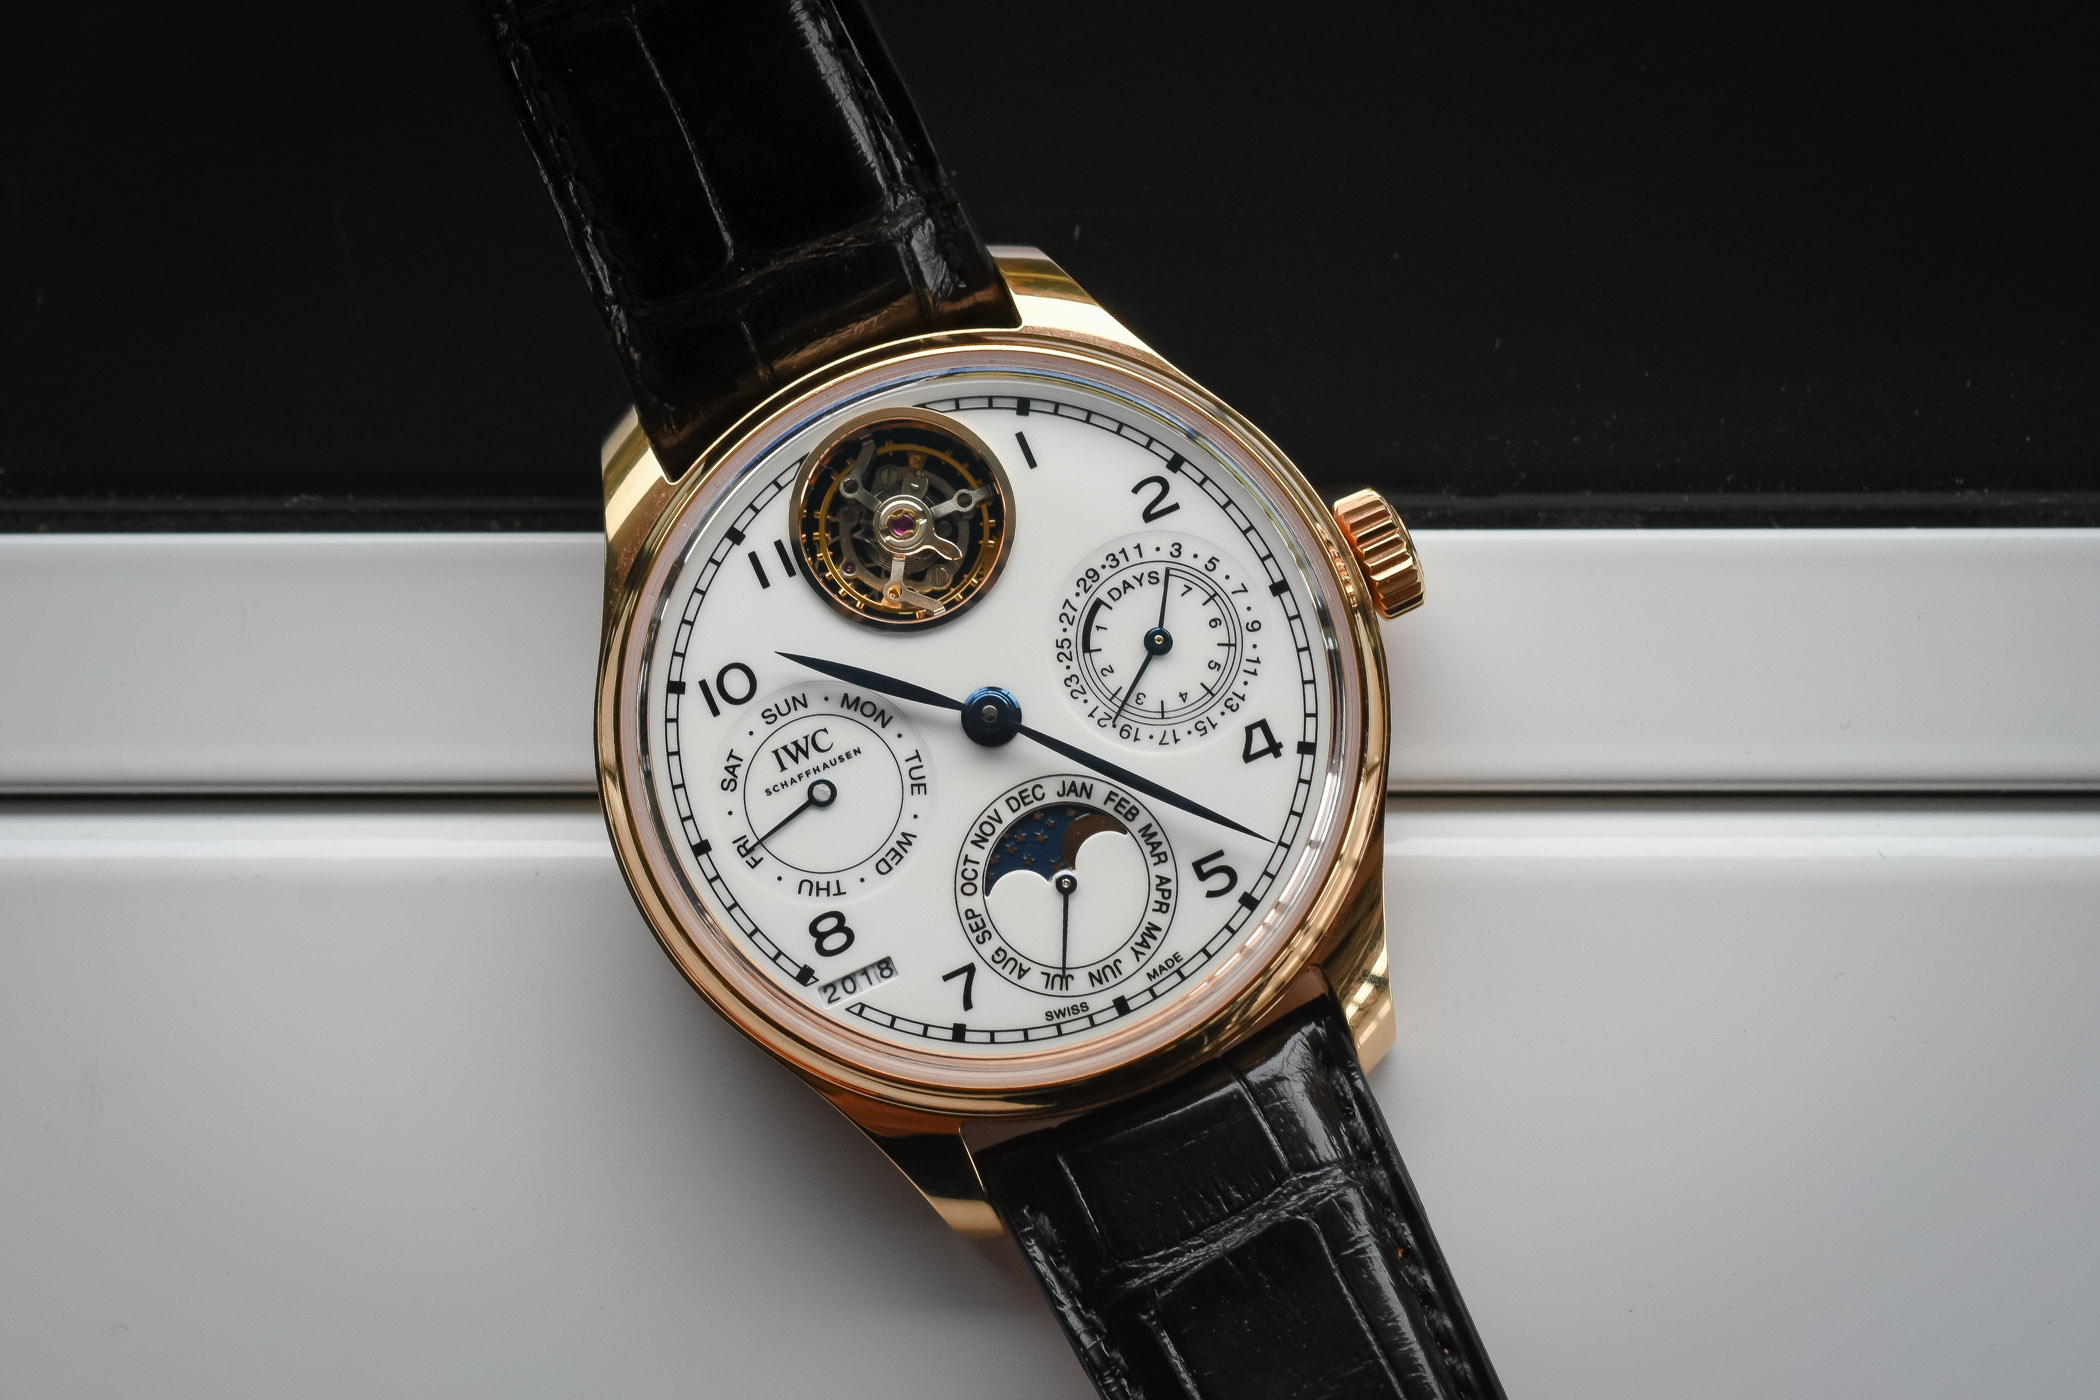 Đồng hồ IWC Portugieser Perpetual Calendar Tourbillon Edition 150 Years Limited Edition